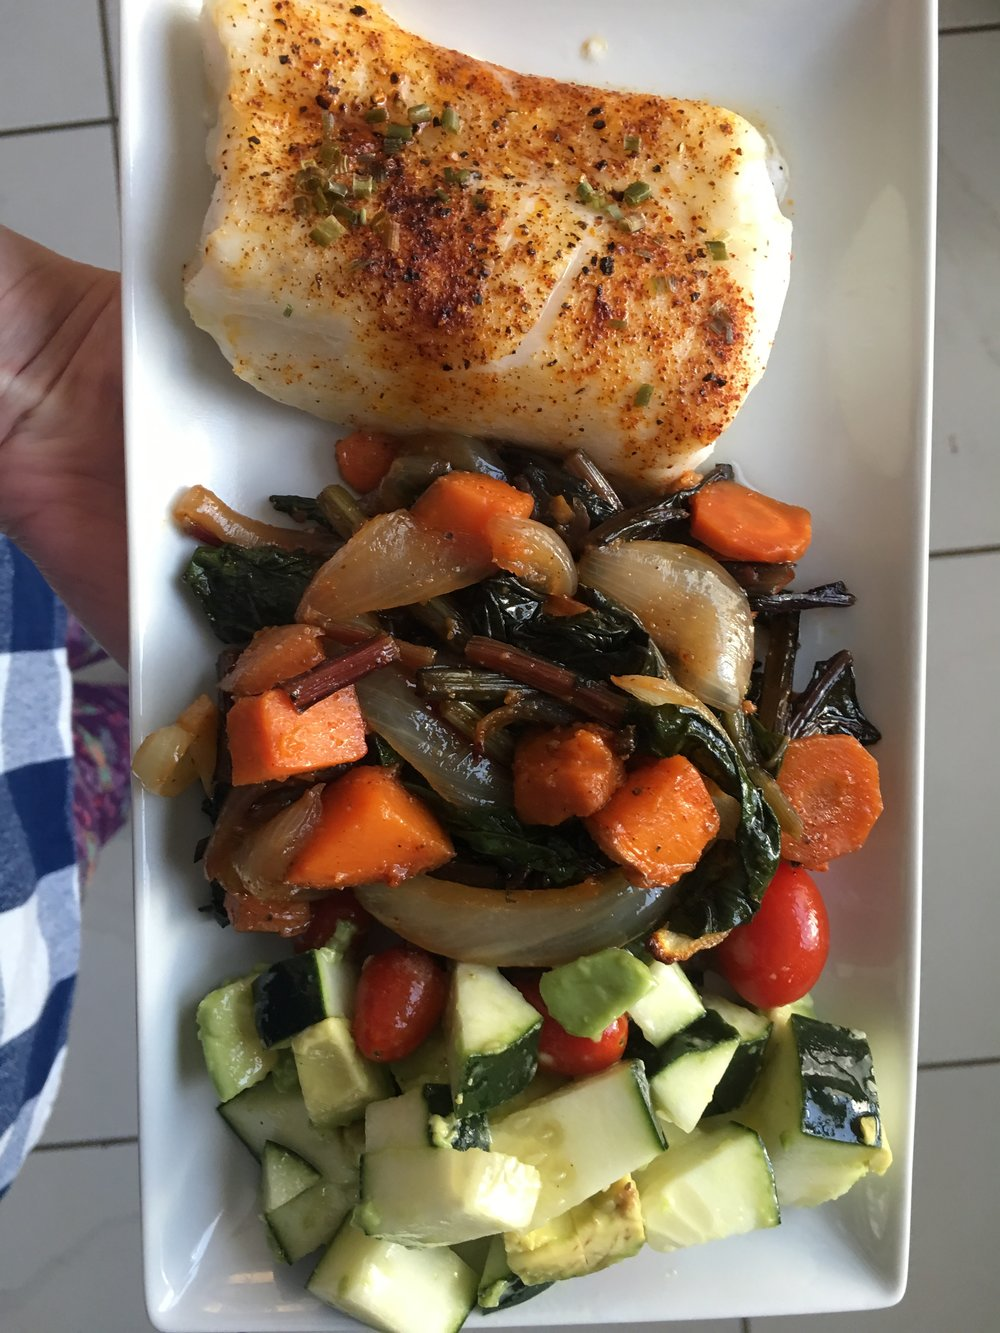 Simple. Healthy. Delicious!   Baked fish with roasted onions, sweet potatoes, carrots, and farmers market beets and greens, plus cucumber and avocado salad